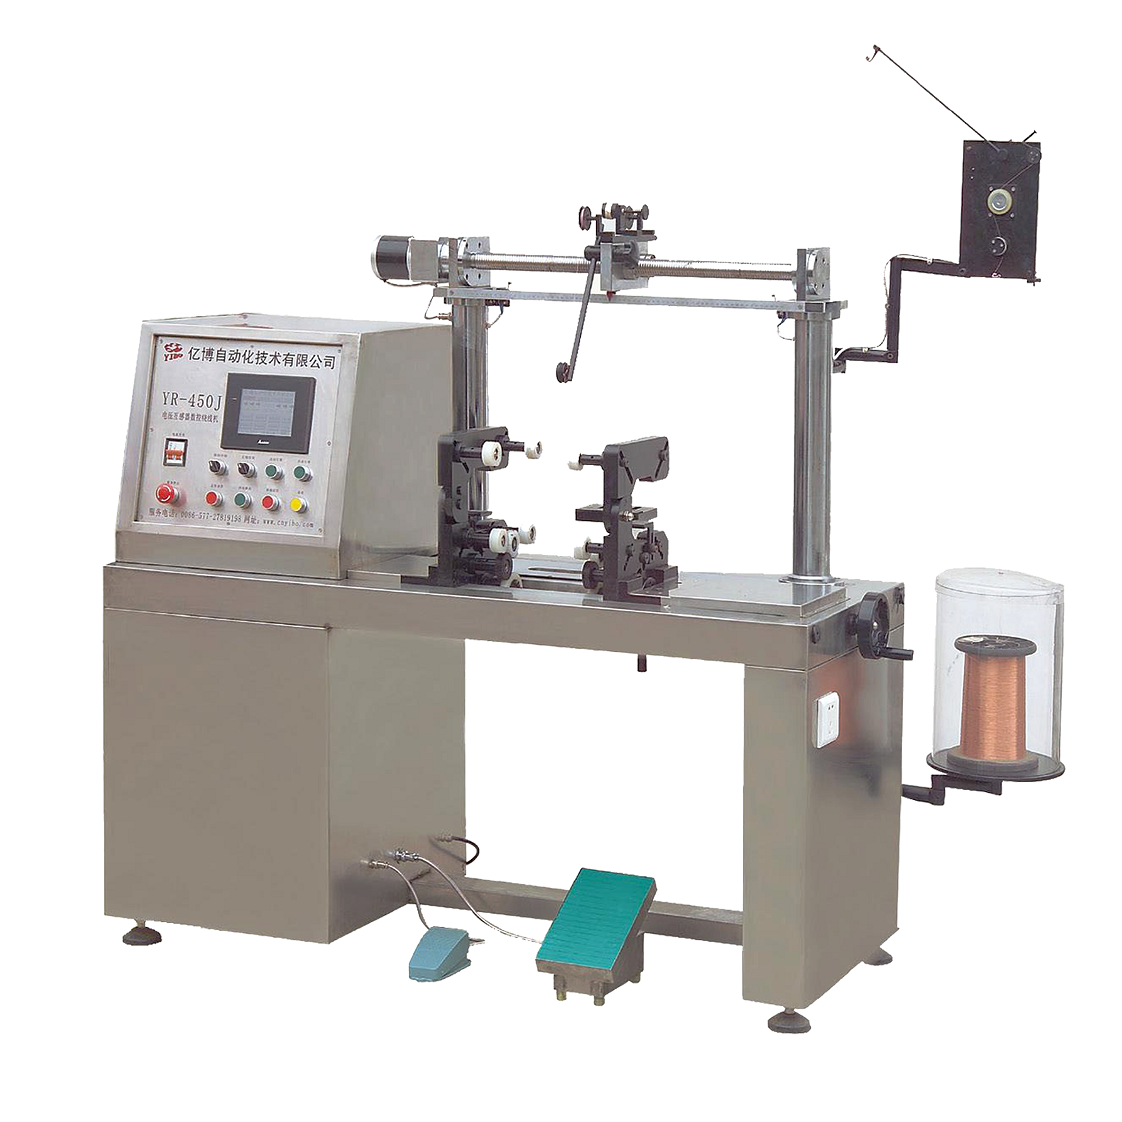 China supplier manual coil winding machine toroid winder coil preliminary winding machine